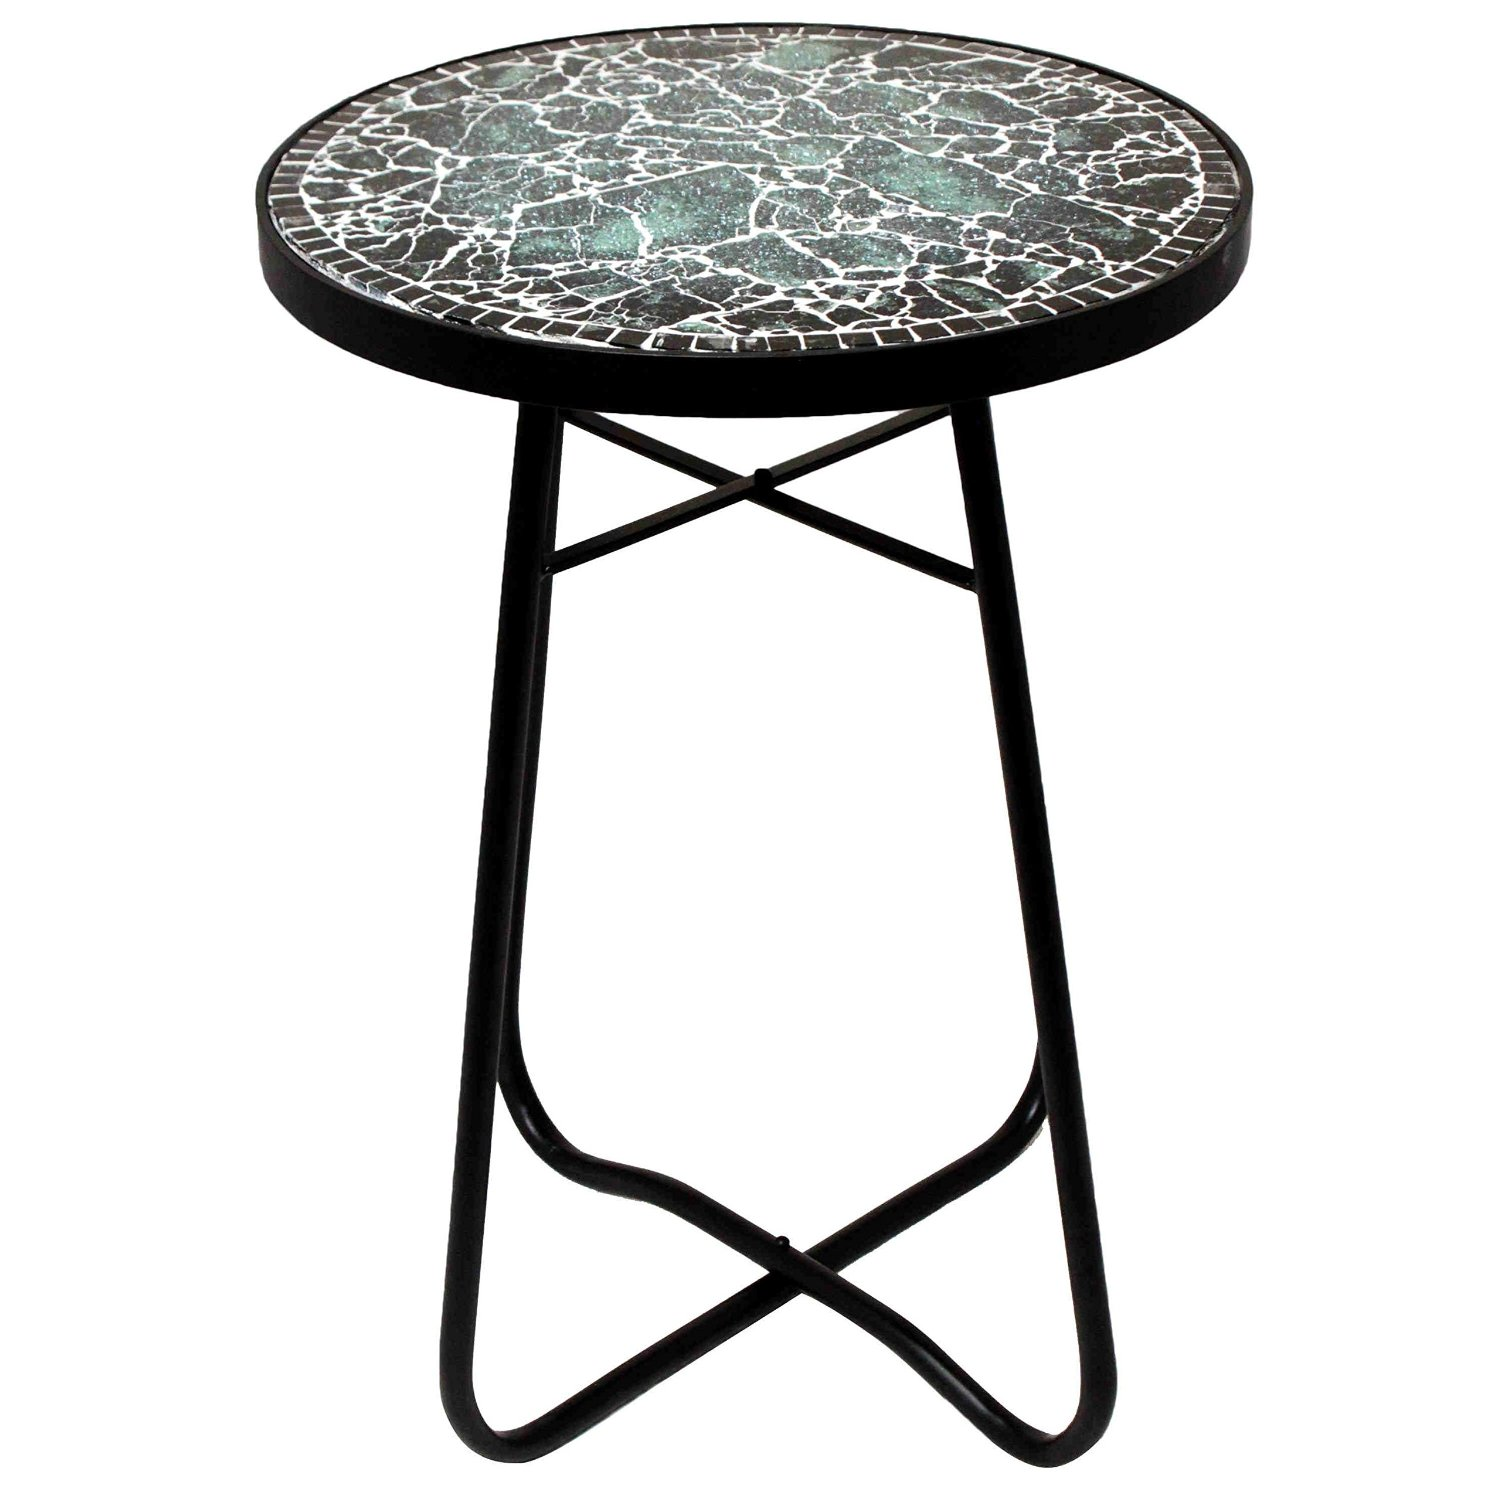 round glass accent table find bella green mosaic outdoor get quotations side traditional style metal construction blue garden chair set inch furniture legs circular patio covers